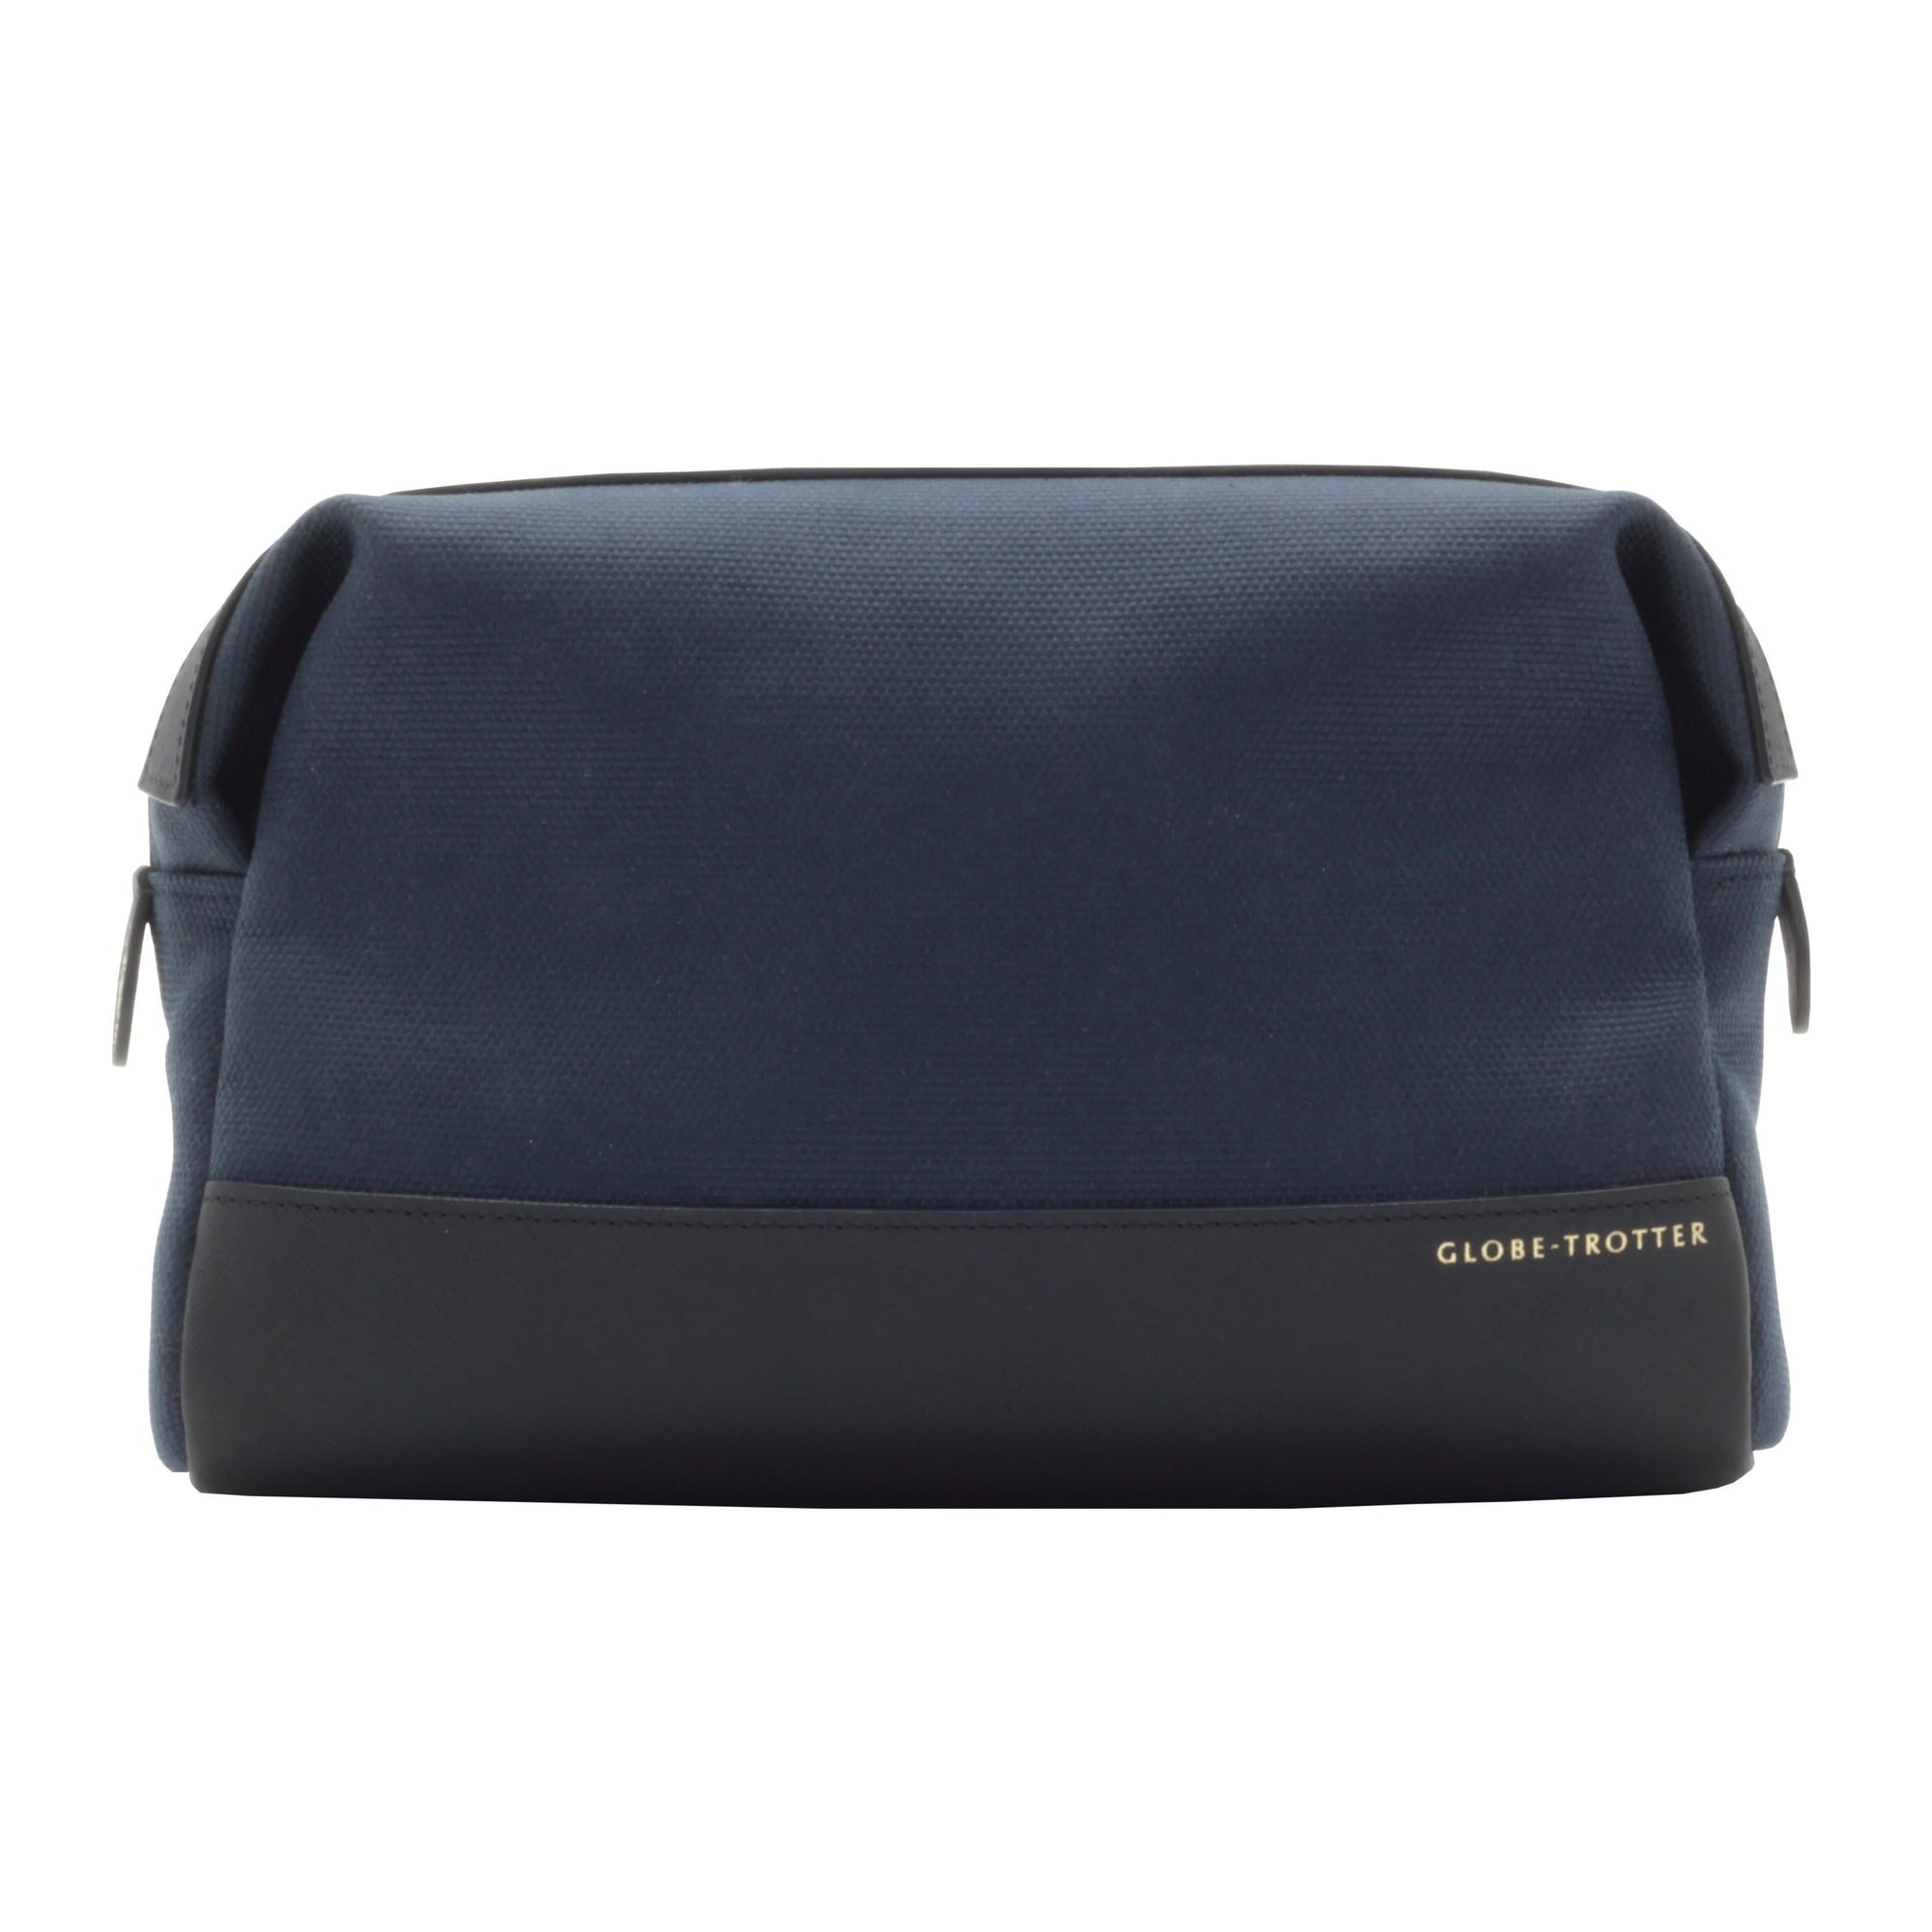 007 Navy Canvas & Leather Wash Bag - By Globe-Trotter - 007STORE